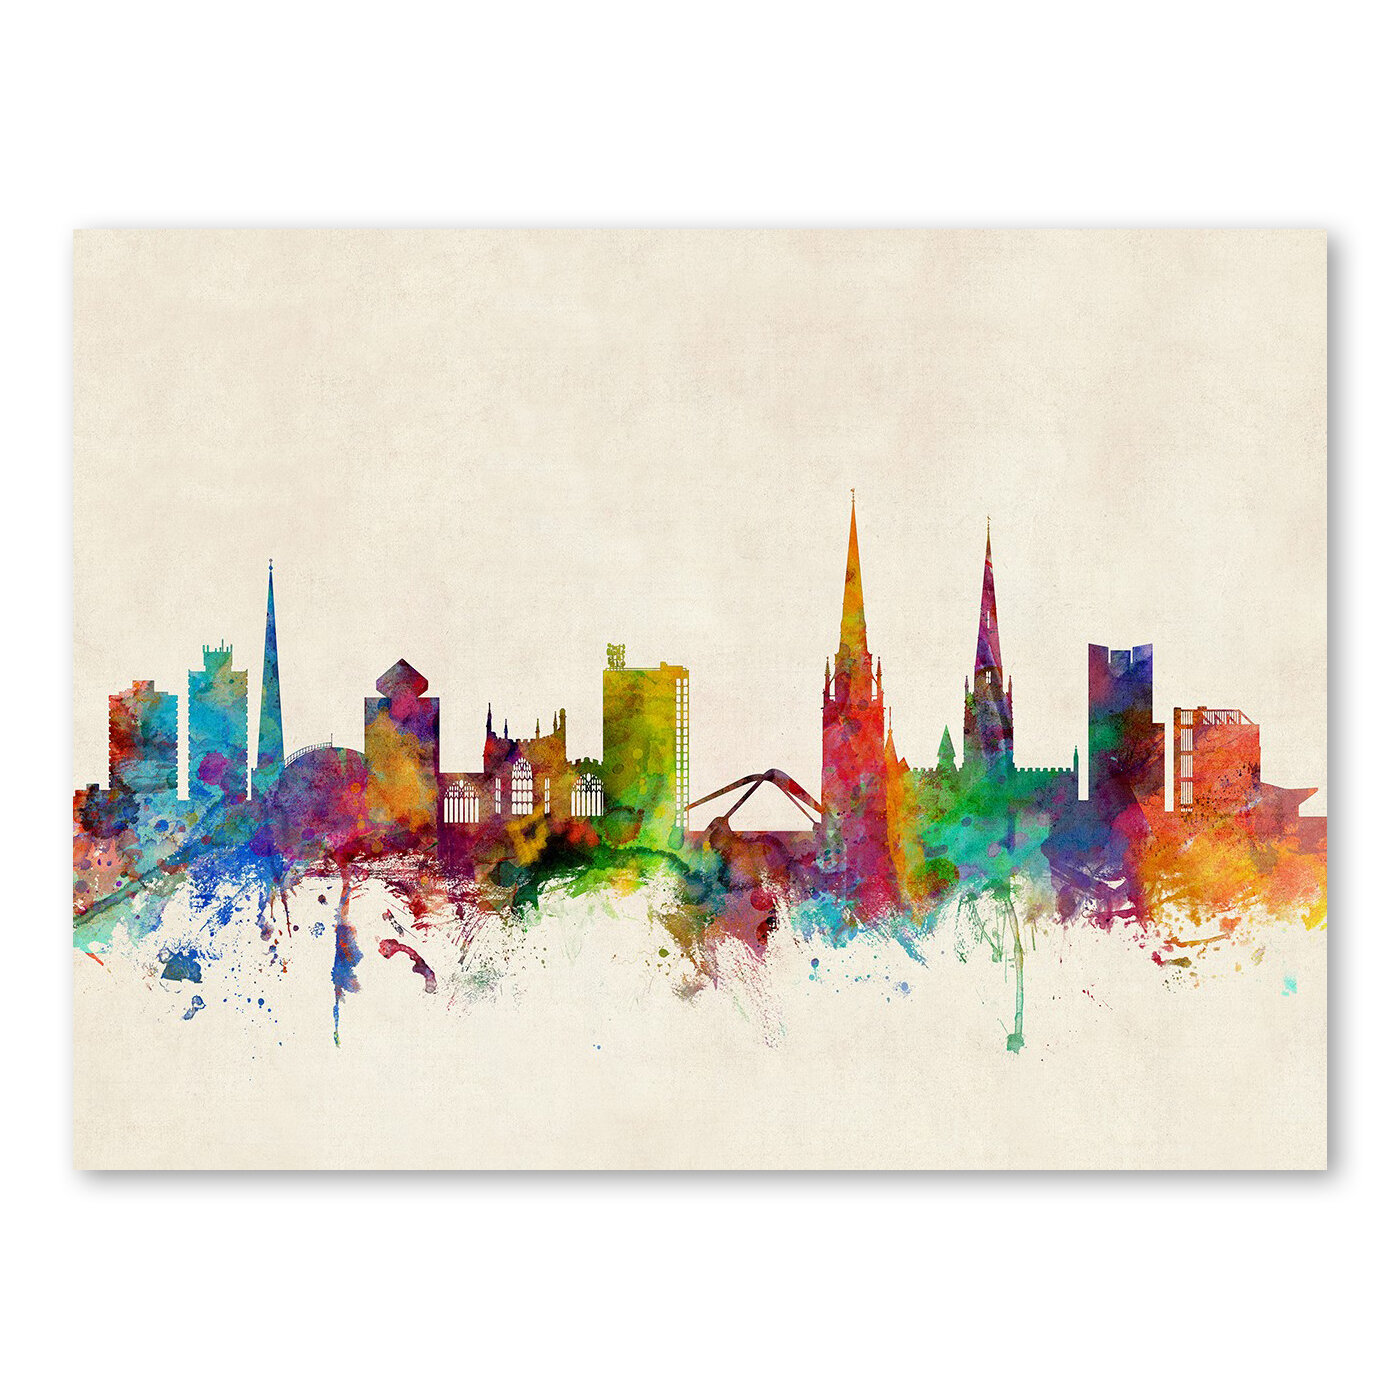 Americanflat coventry england skyline wall mural wayfair for England wall mural